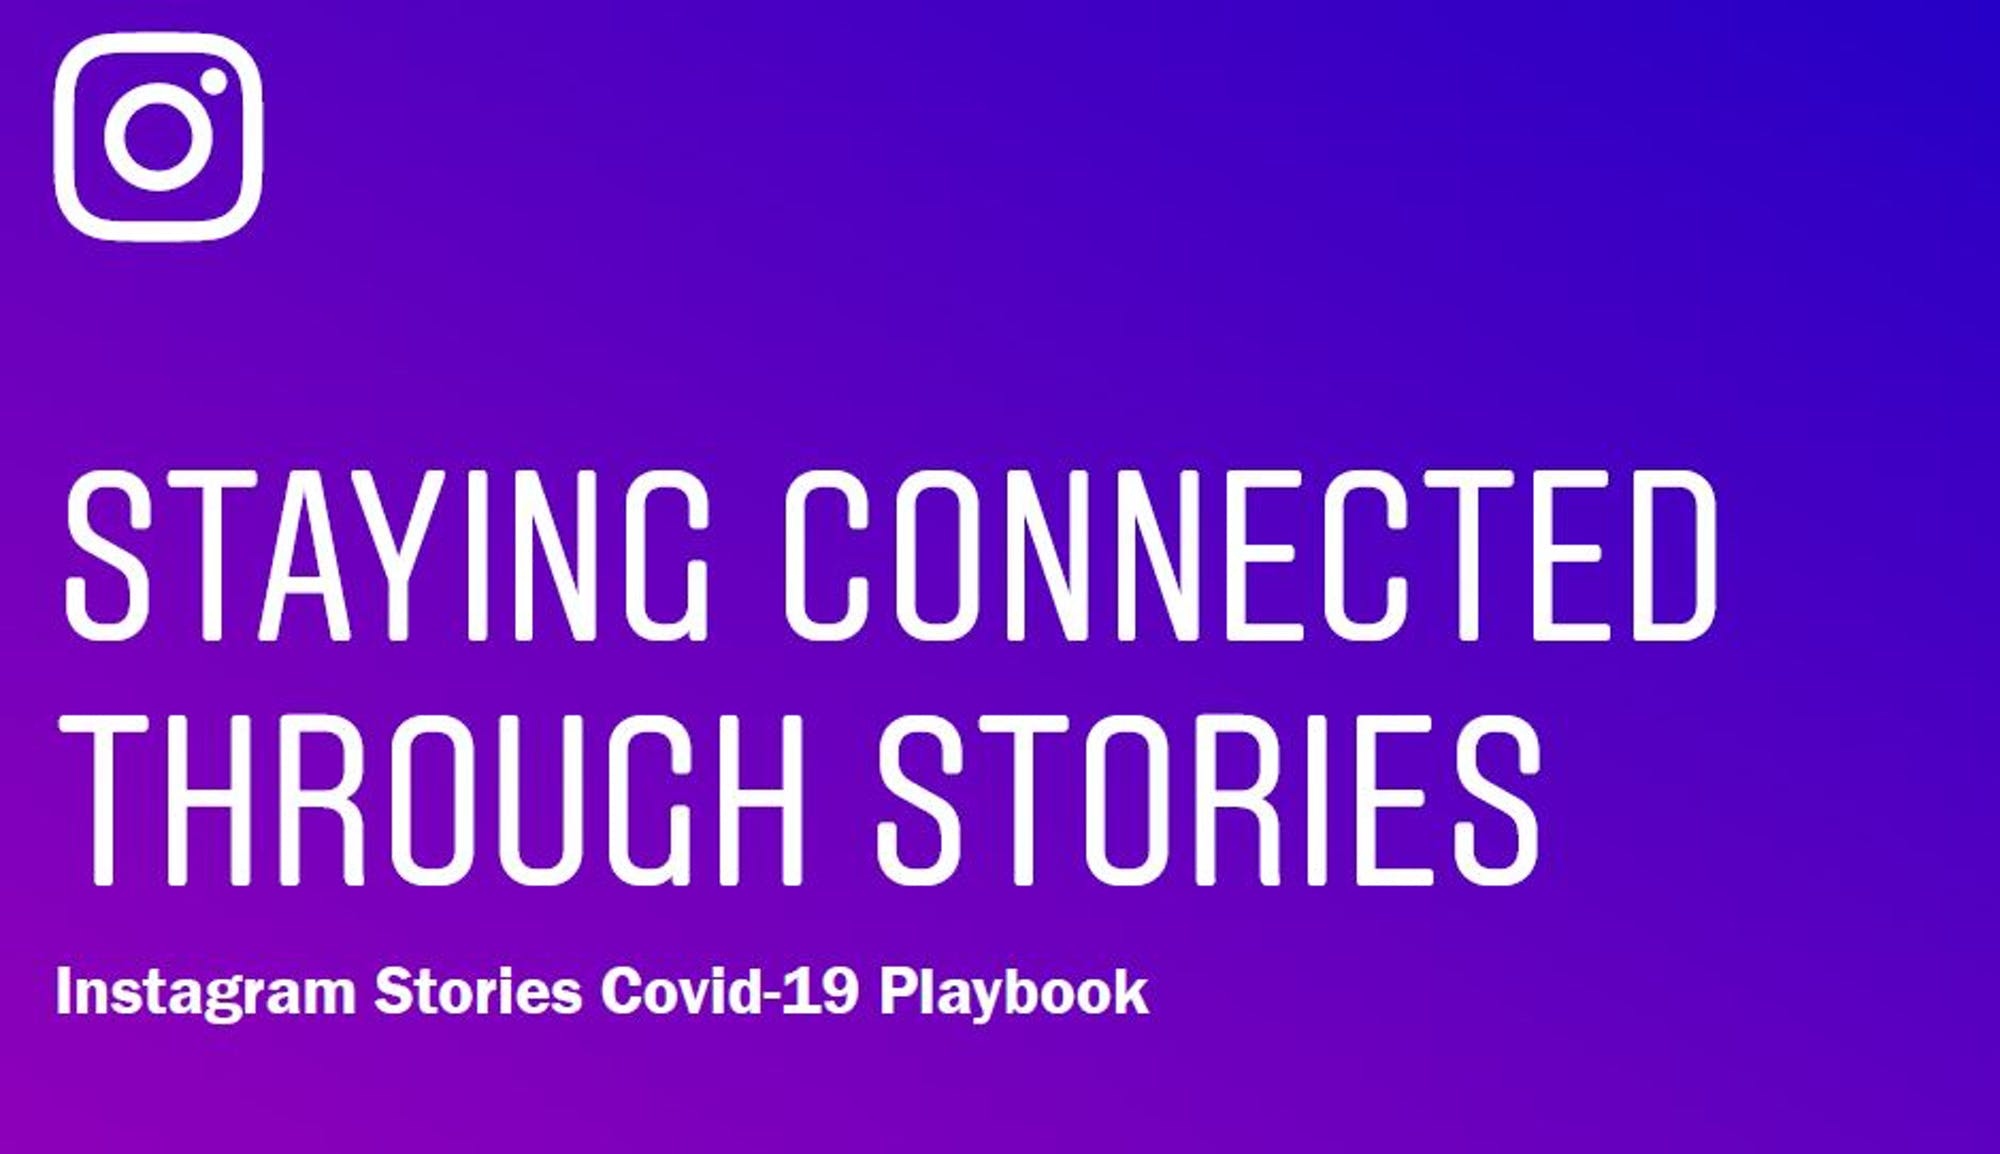 Staying connected through Instagram Stories  Insights from Facebook